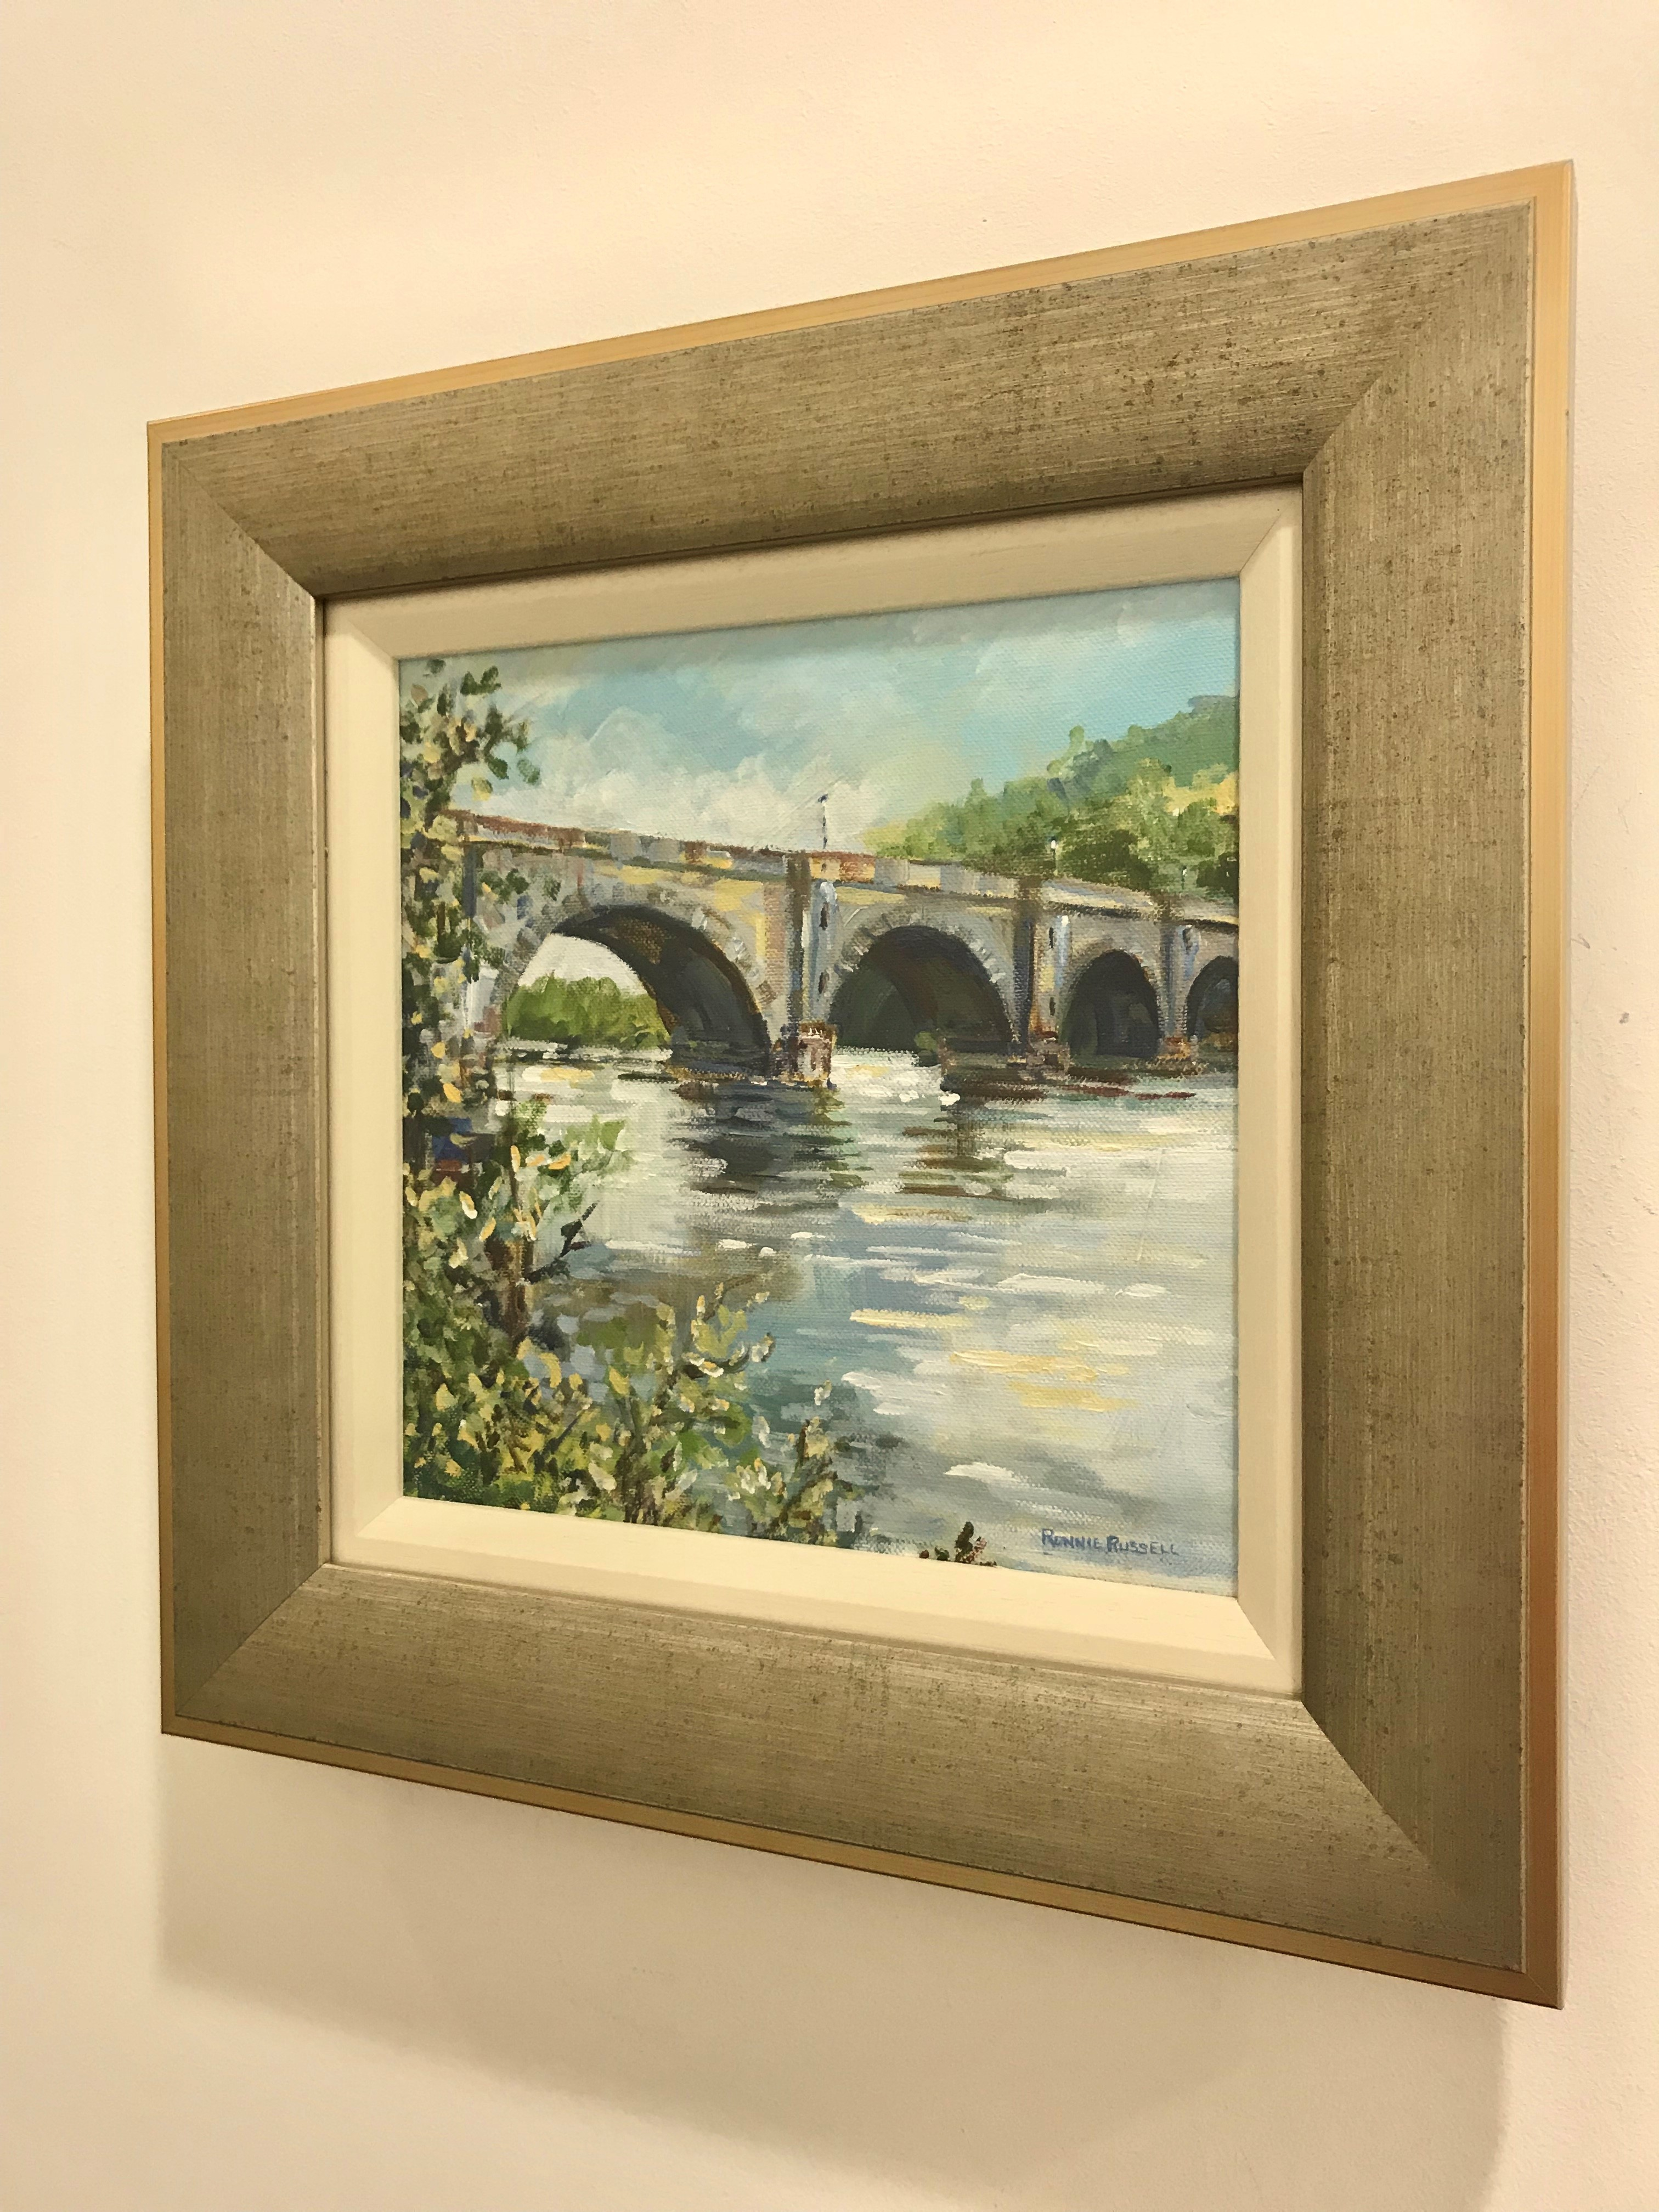 'The Thomas Telford Bridge in Dunkeld' by artist Ronnie Russell